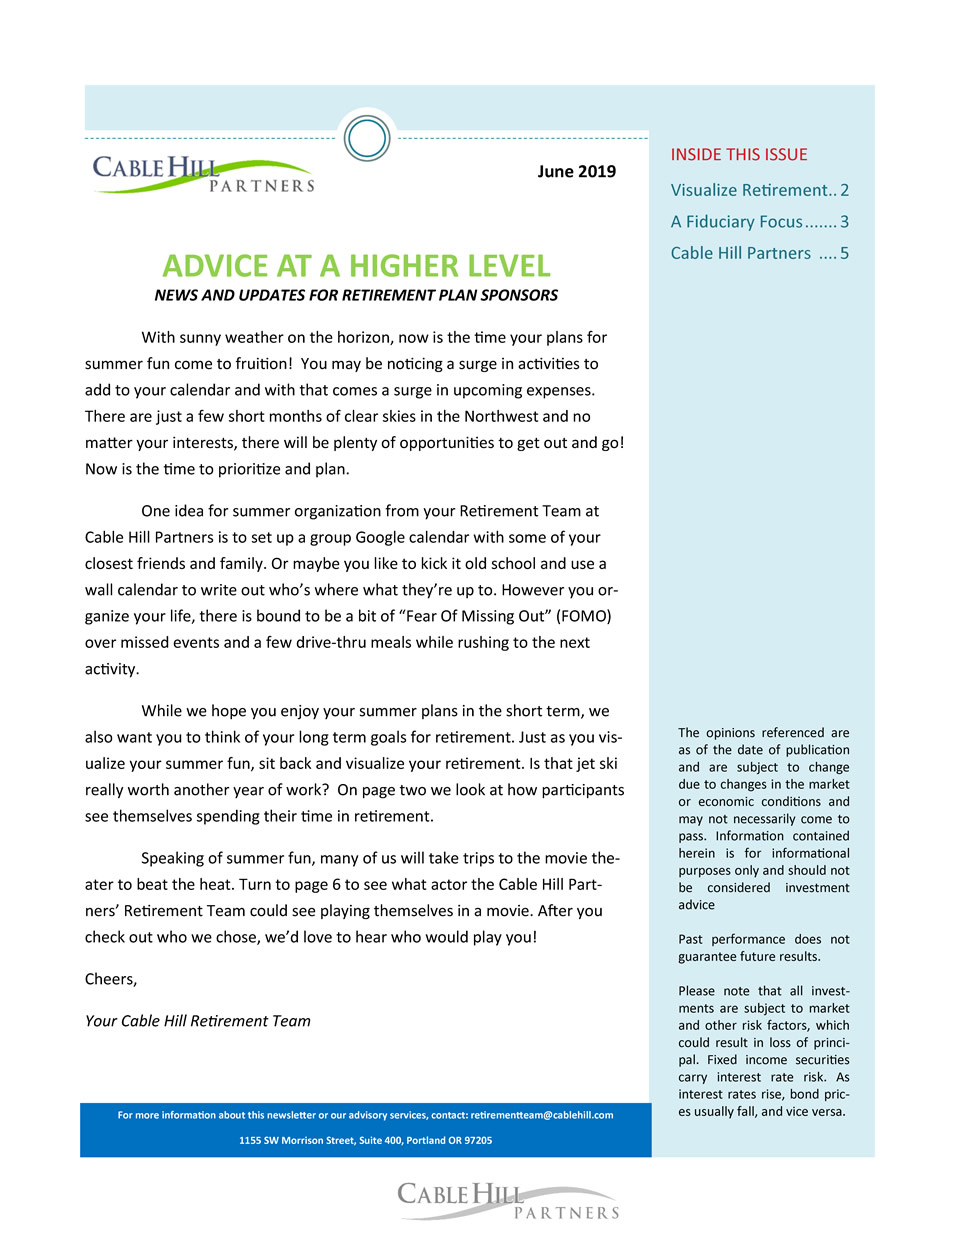 2019Q2 Retirement Times Newsletter from Cable Hill Partners